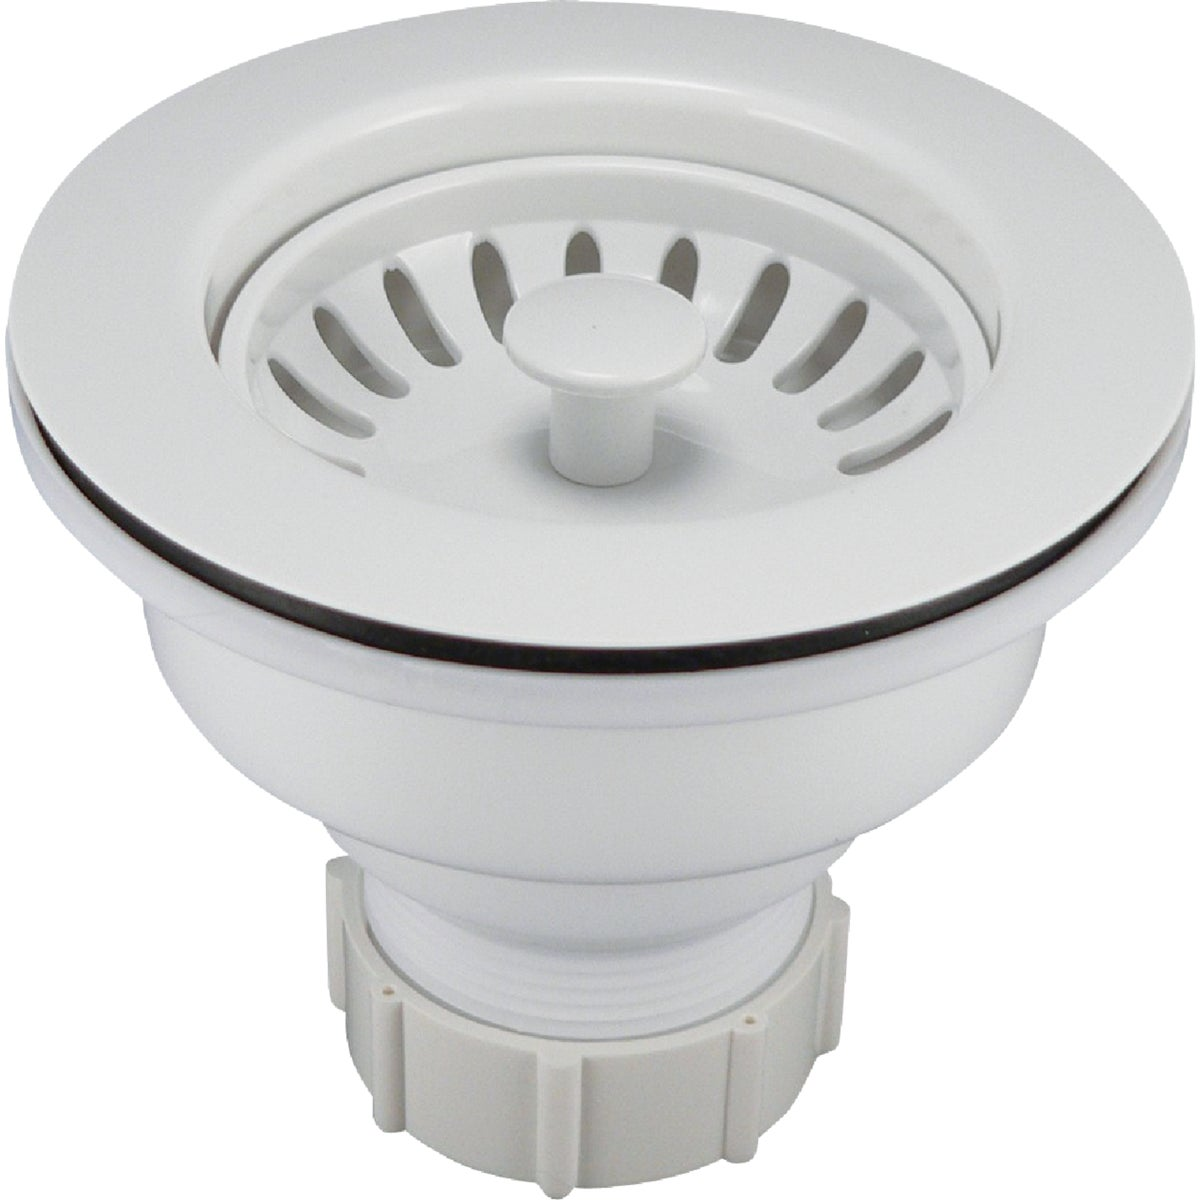 WHITE KITCHEN STRAINER - 466356 by Plumb Pak/keeney Mfg